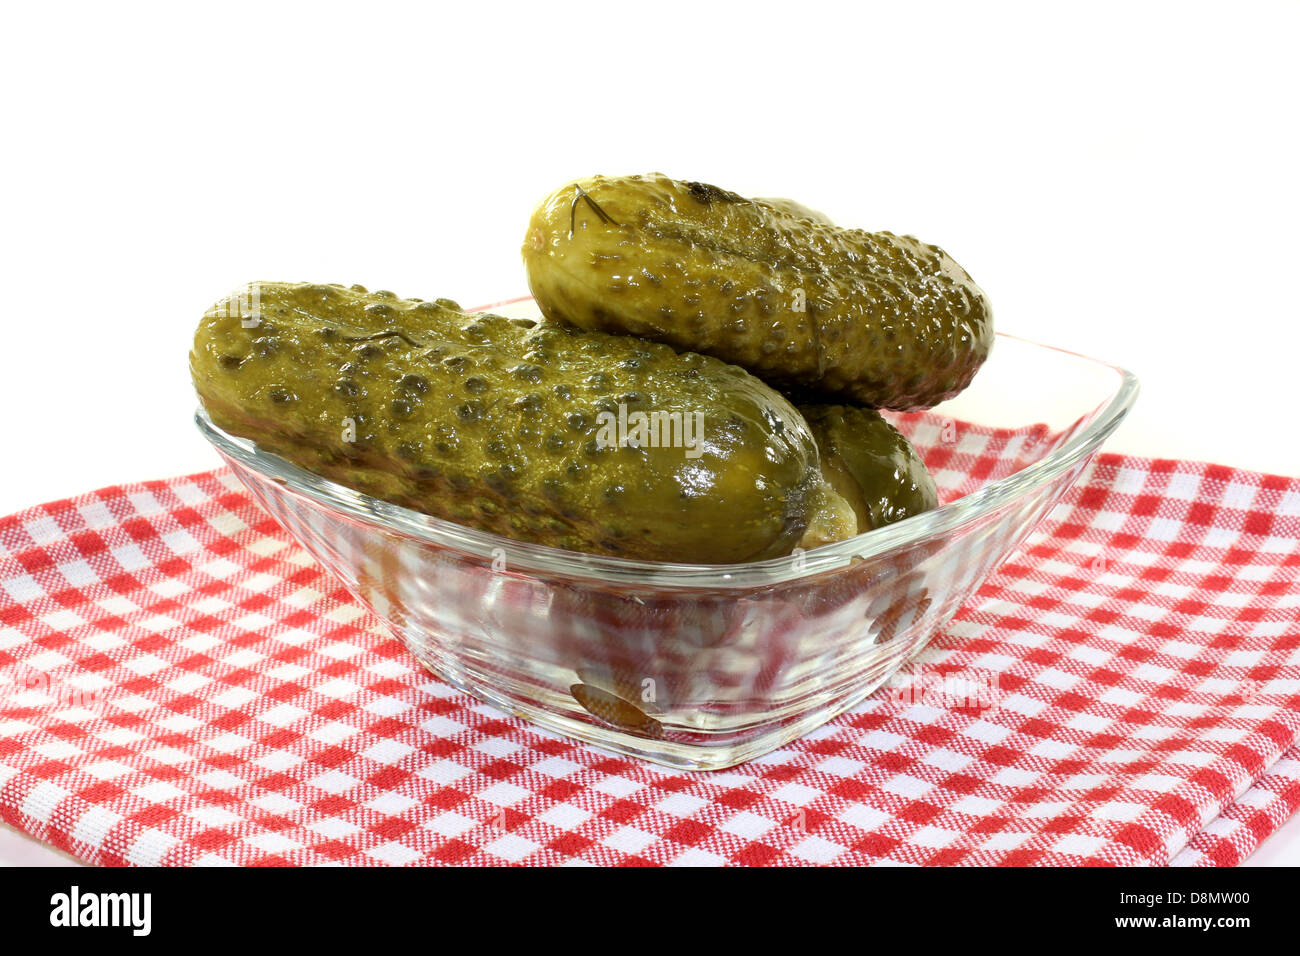 pickled cucumber - Stock Image